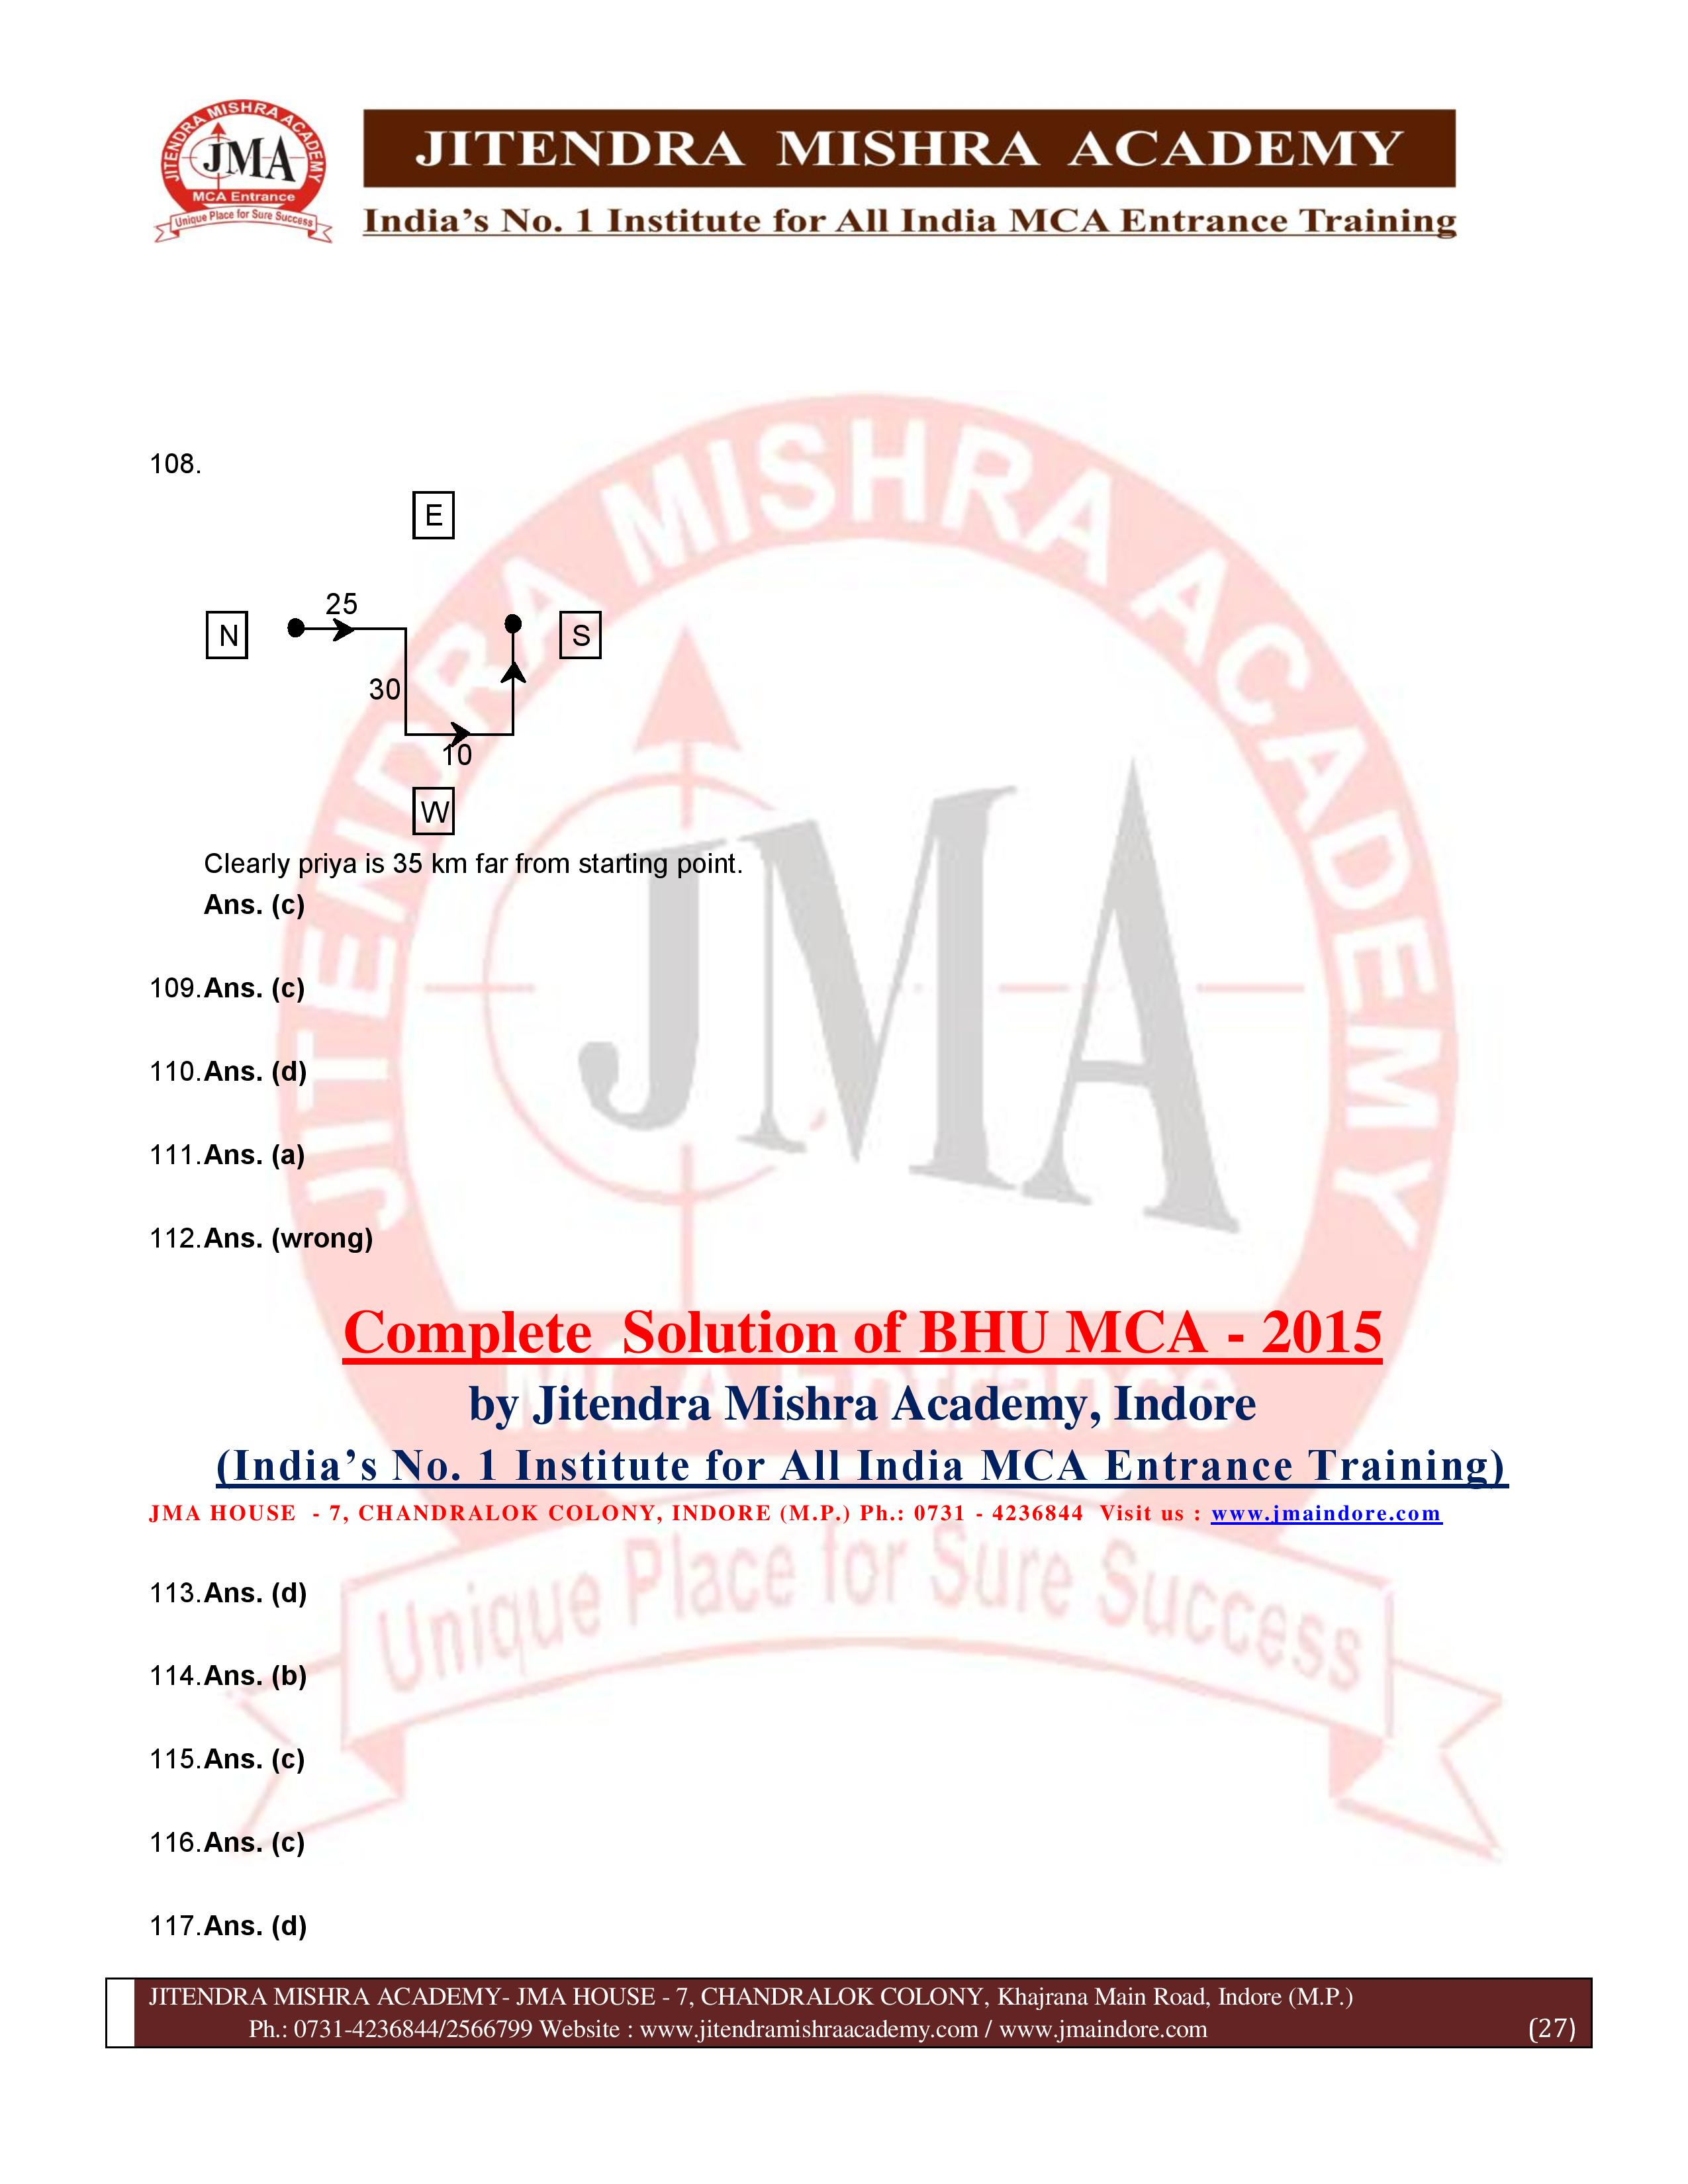 BHU 2015 SOLUTION (SET - 1) (29.06.16)-page-027